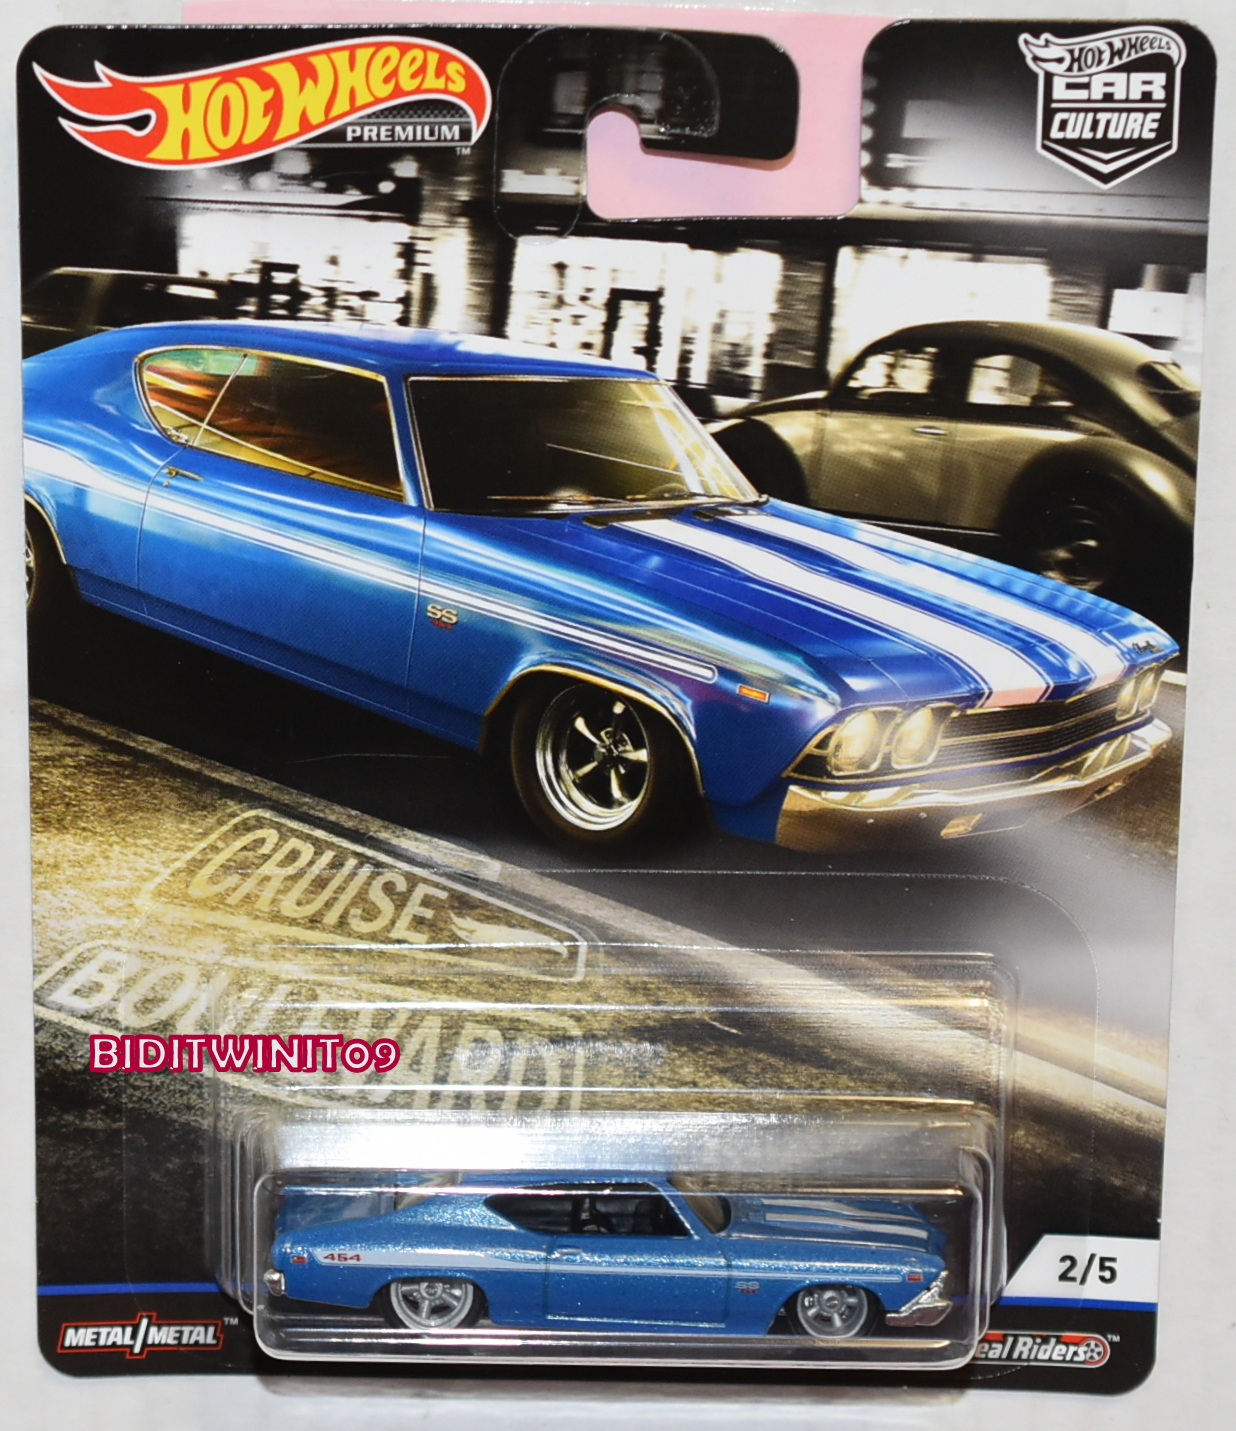 HOT WHEELS 2019 CAR CULTURE BOULEVARD CASE M '69 CHEVELLE SS 396